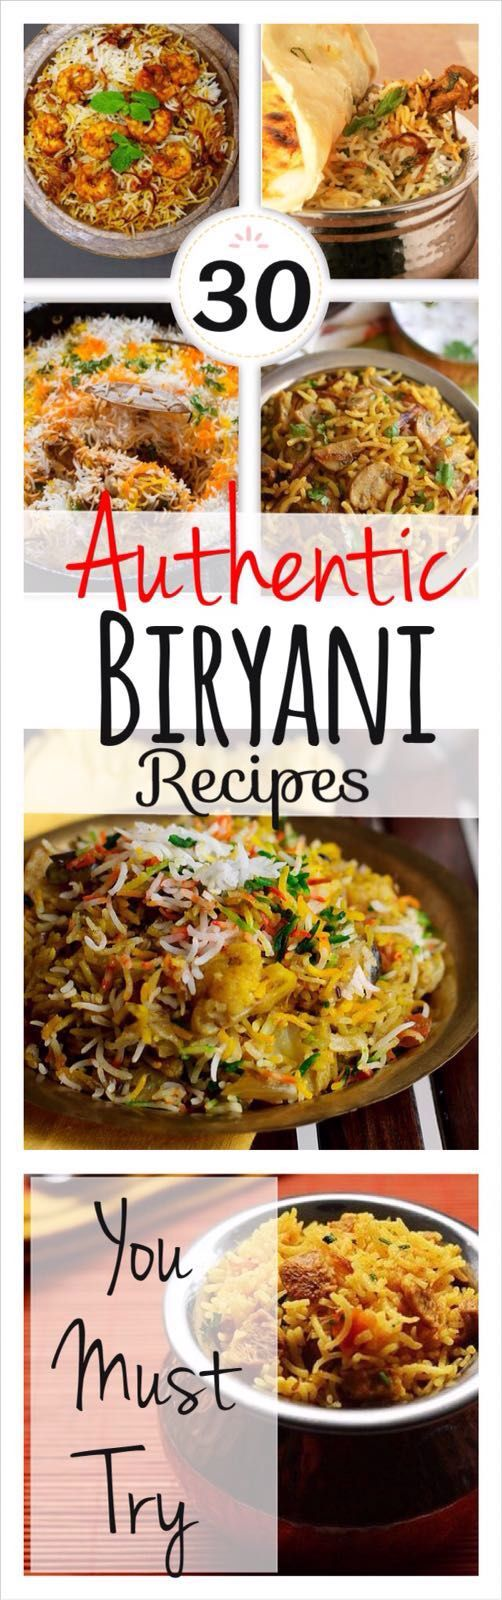 Biryani is prominently a dish of Nizams. Rice being the more staple food of South India, It has more varieties of Biryani. Particularly, Hyderabadi biryani originated as a blend of Mughlai and Iranian cuisine in the kitchens of the Nizam, rulers of the historic Hyderabad State. It is also a staple part of Pakistani Cuisine due to its exotic flavor …